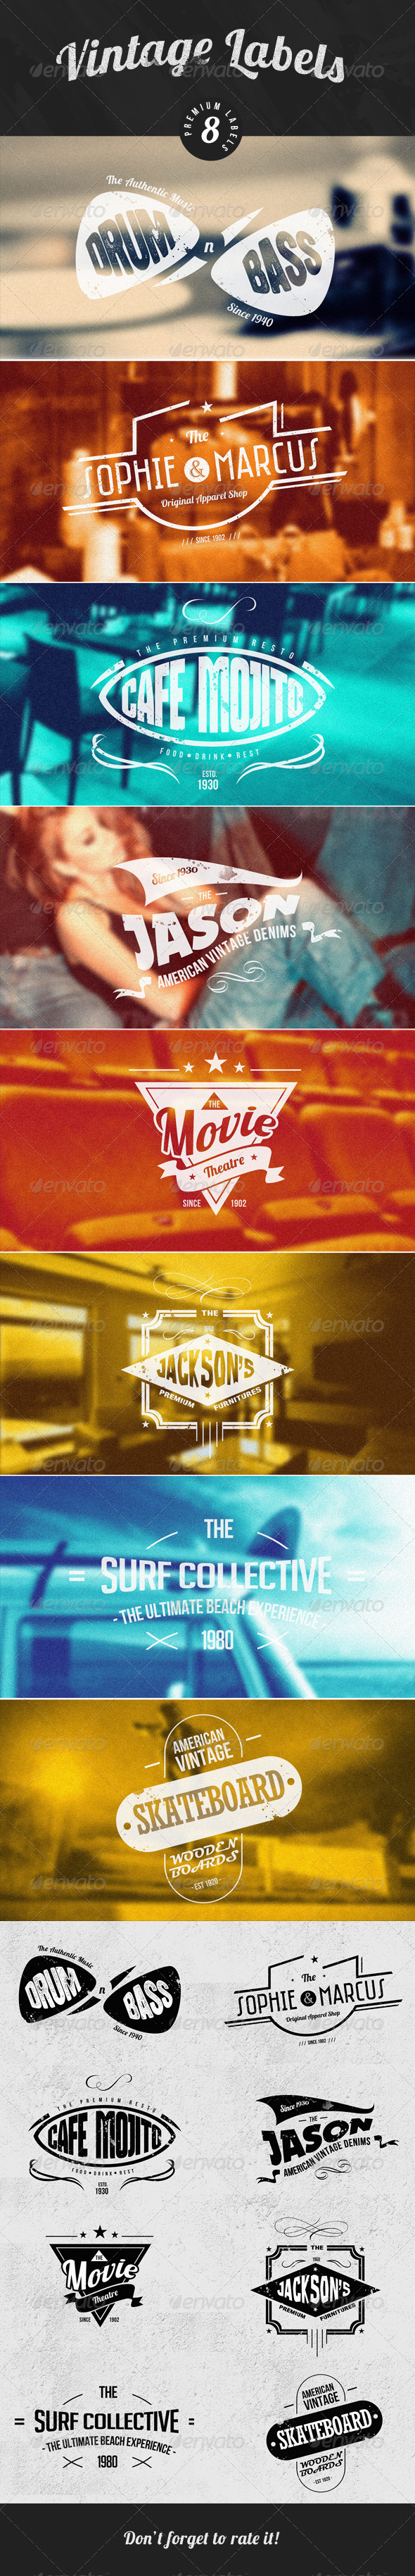 Vintage Logos / Badges / stickers V1 - Badges & Stickers Web Elements